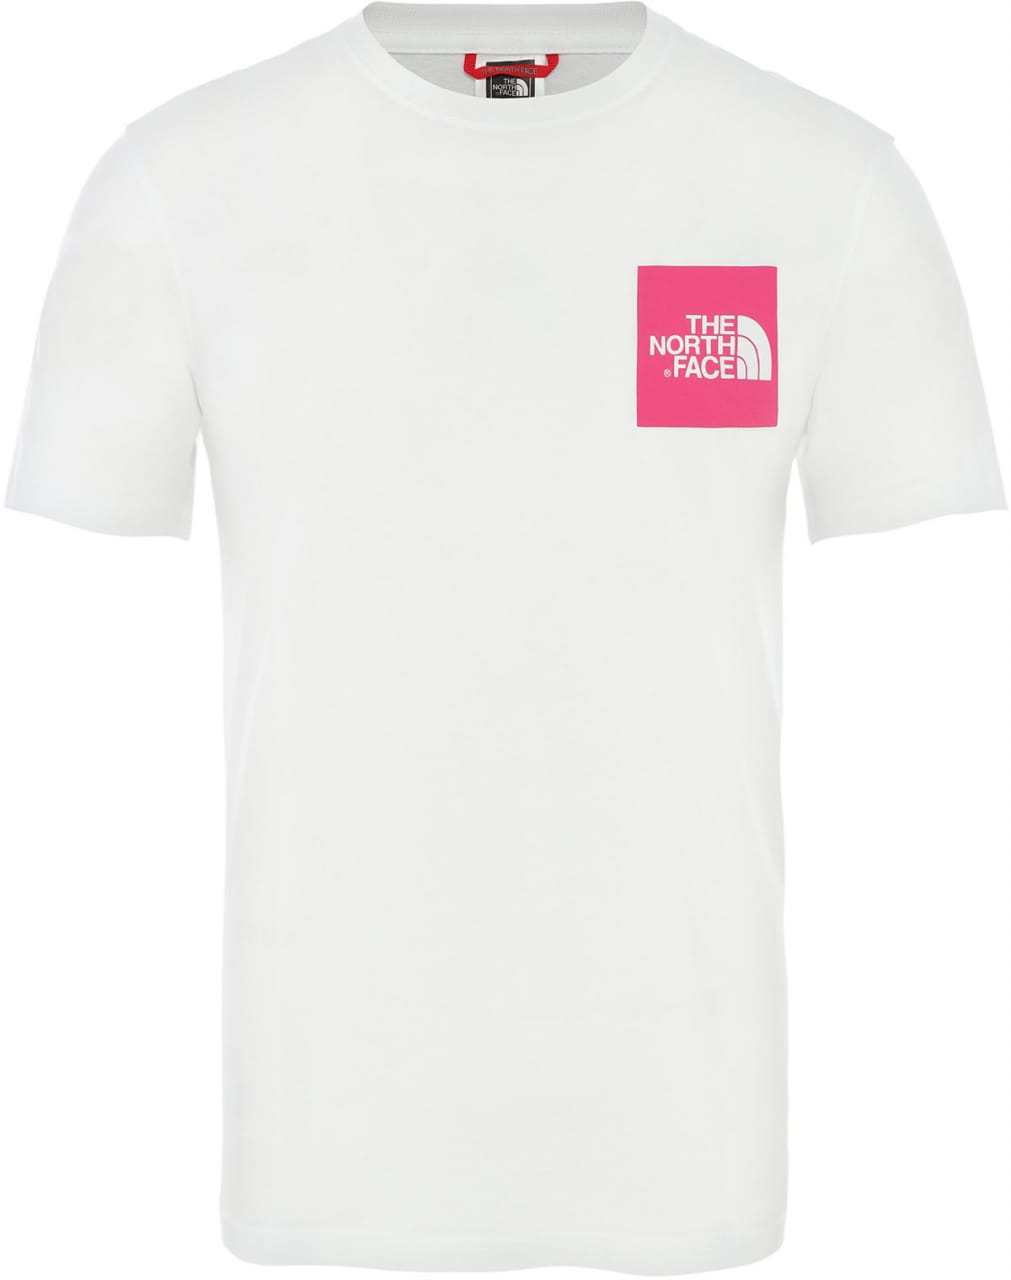 Pánské tričko The North Face Men's Fine T-Shirt